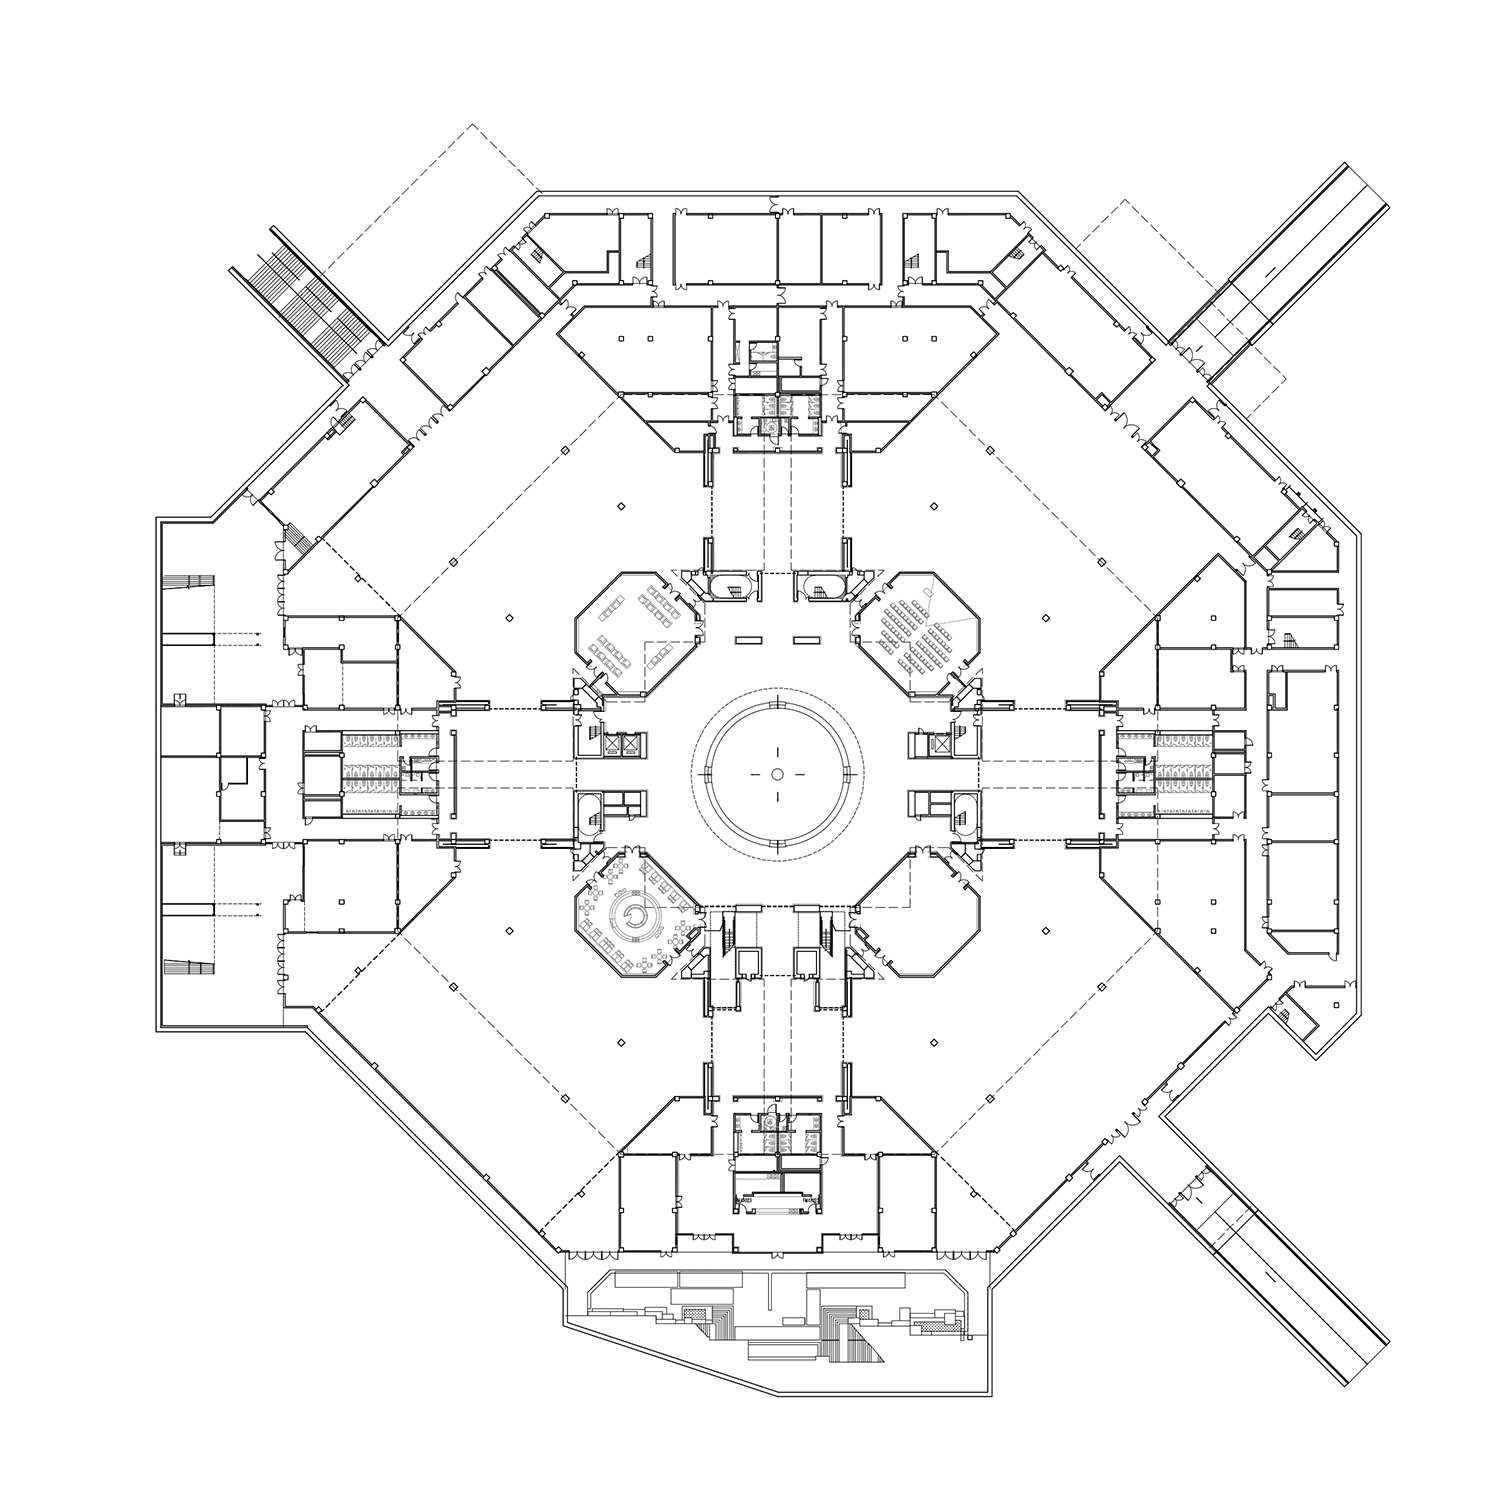 300 - Underground Floor Plan The Architectural Design & Research Institute of Zhejiang University}